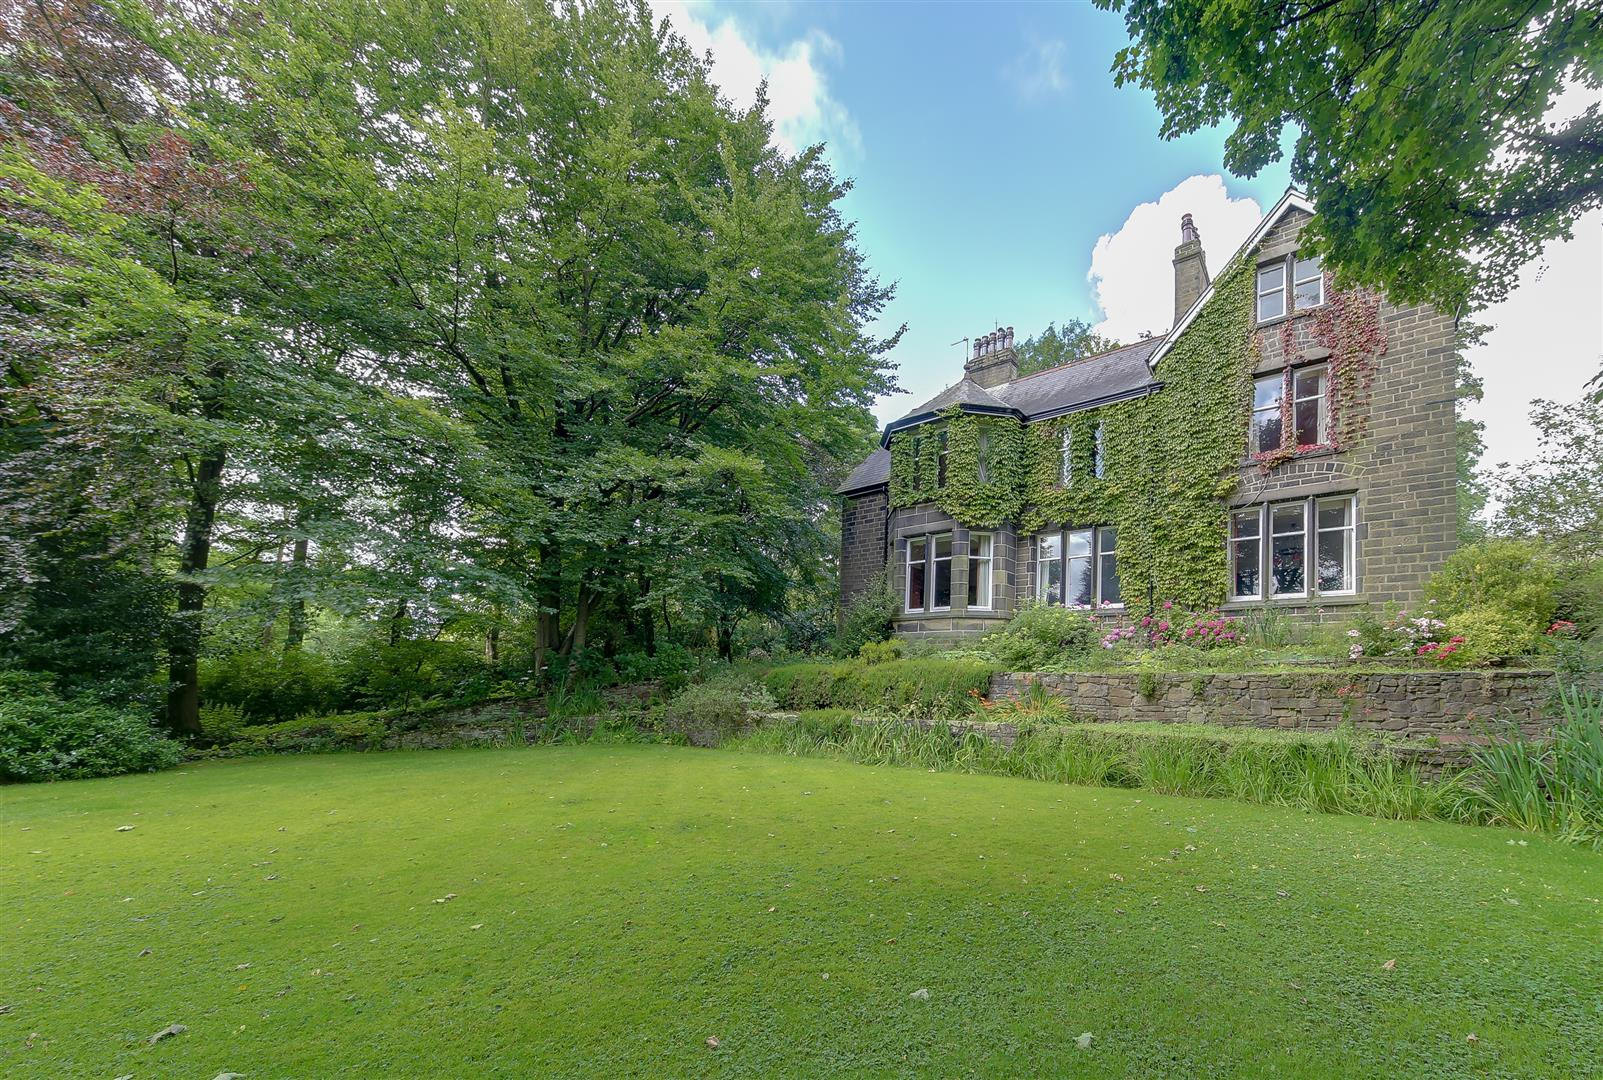 7 Bedrooms Detached House for sale in Vicarage Lane off Haslingden Road, Rawtenstall